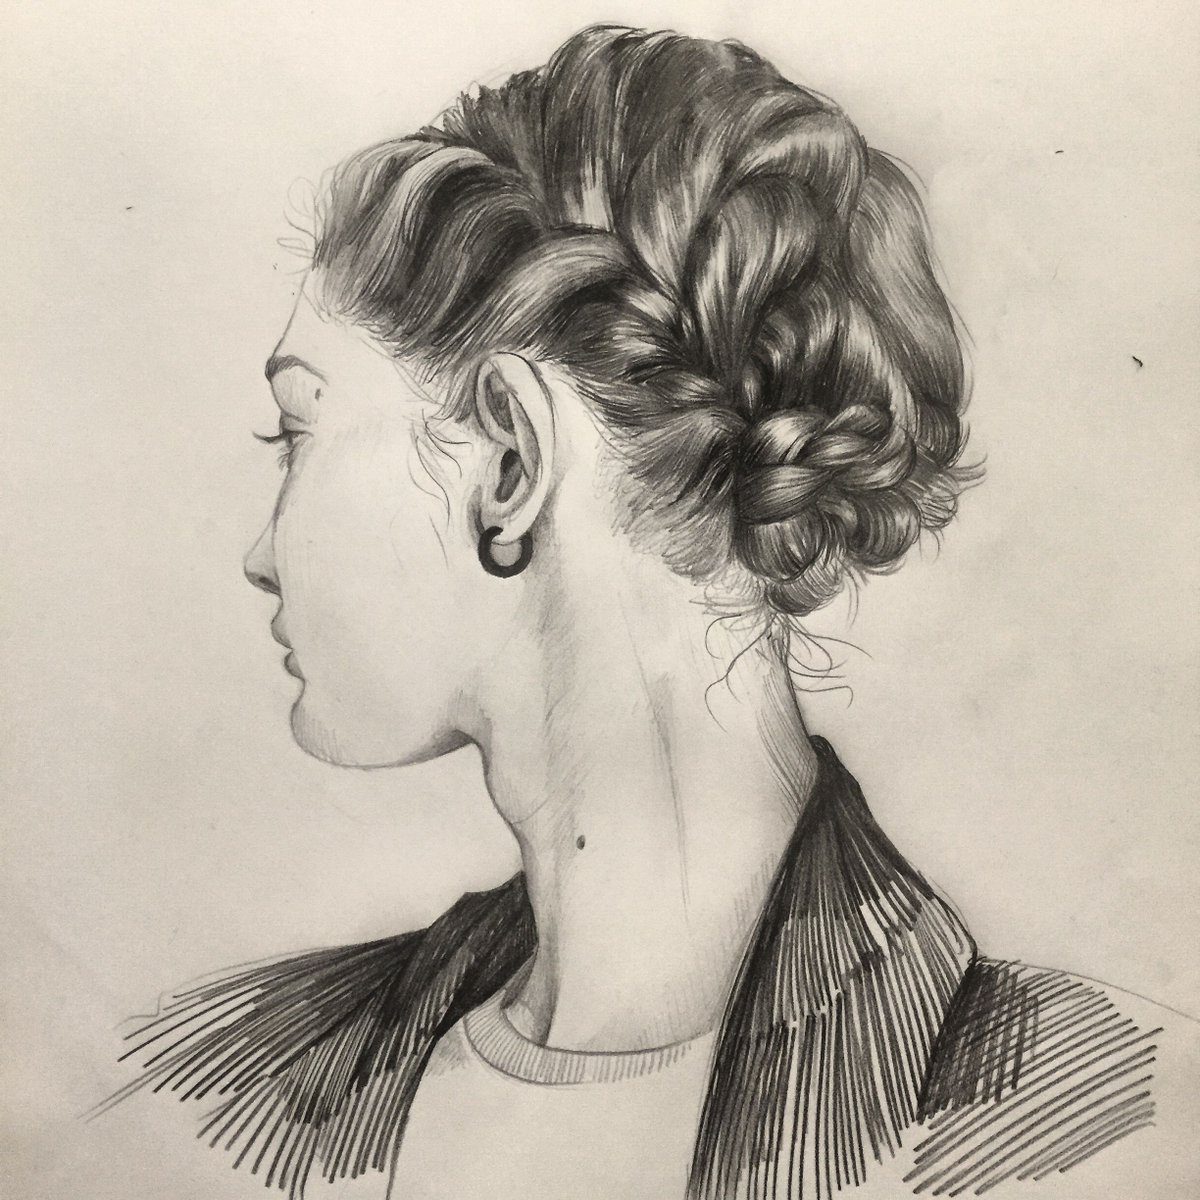 So impressed with the line work in this pencil sketch  https://t.co/dJyCJQ5m3c https://t.co/YURgqPnmt7